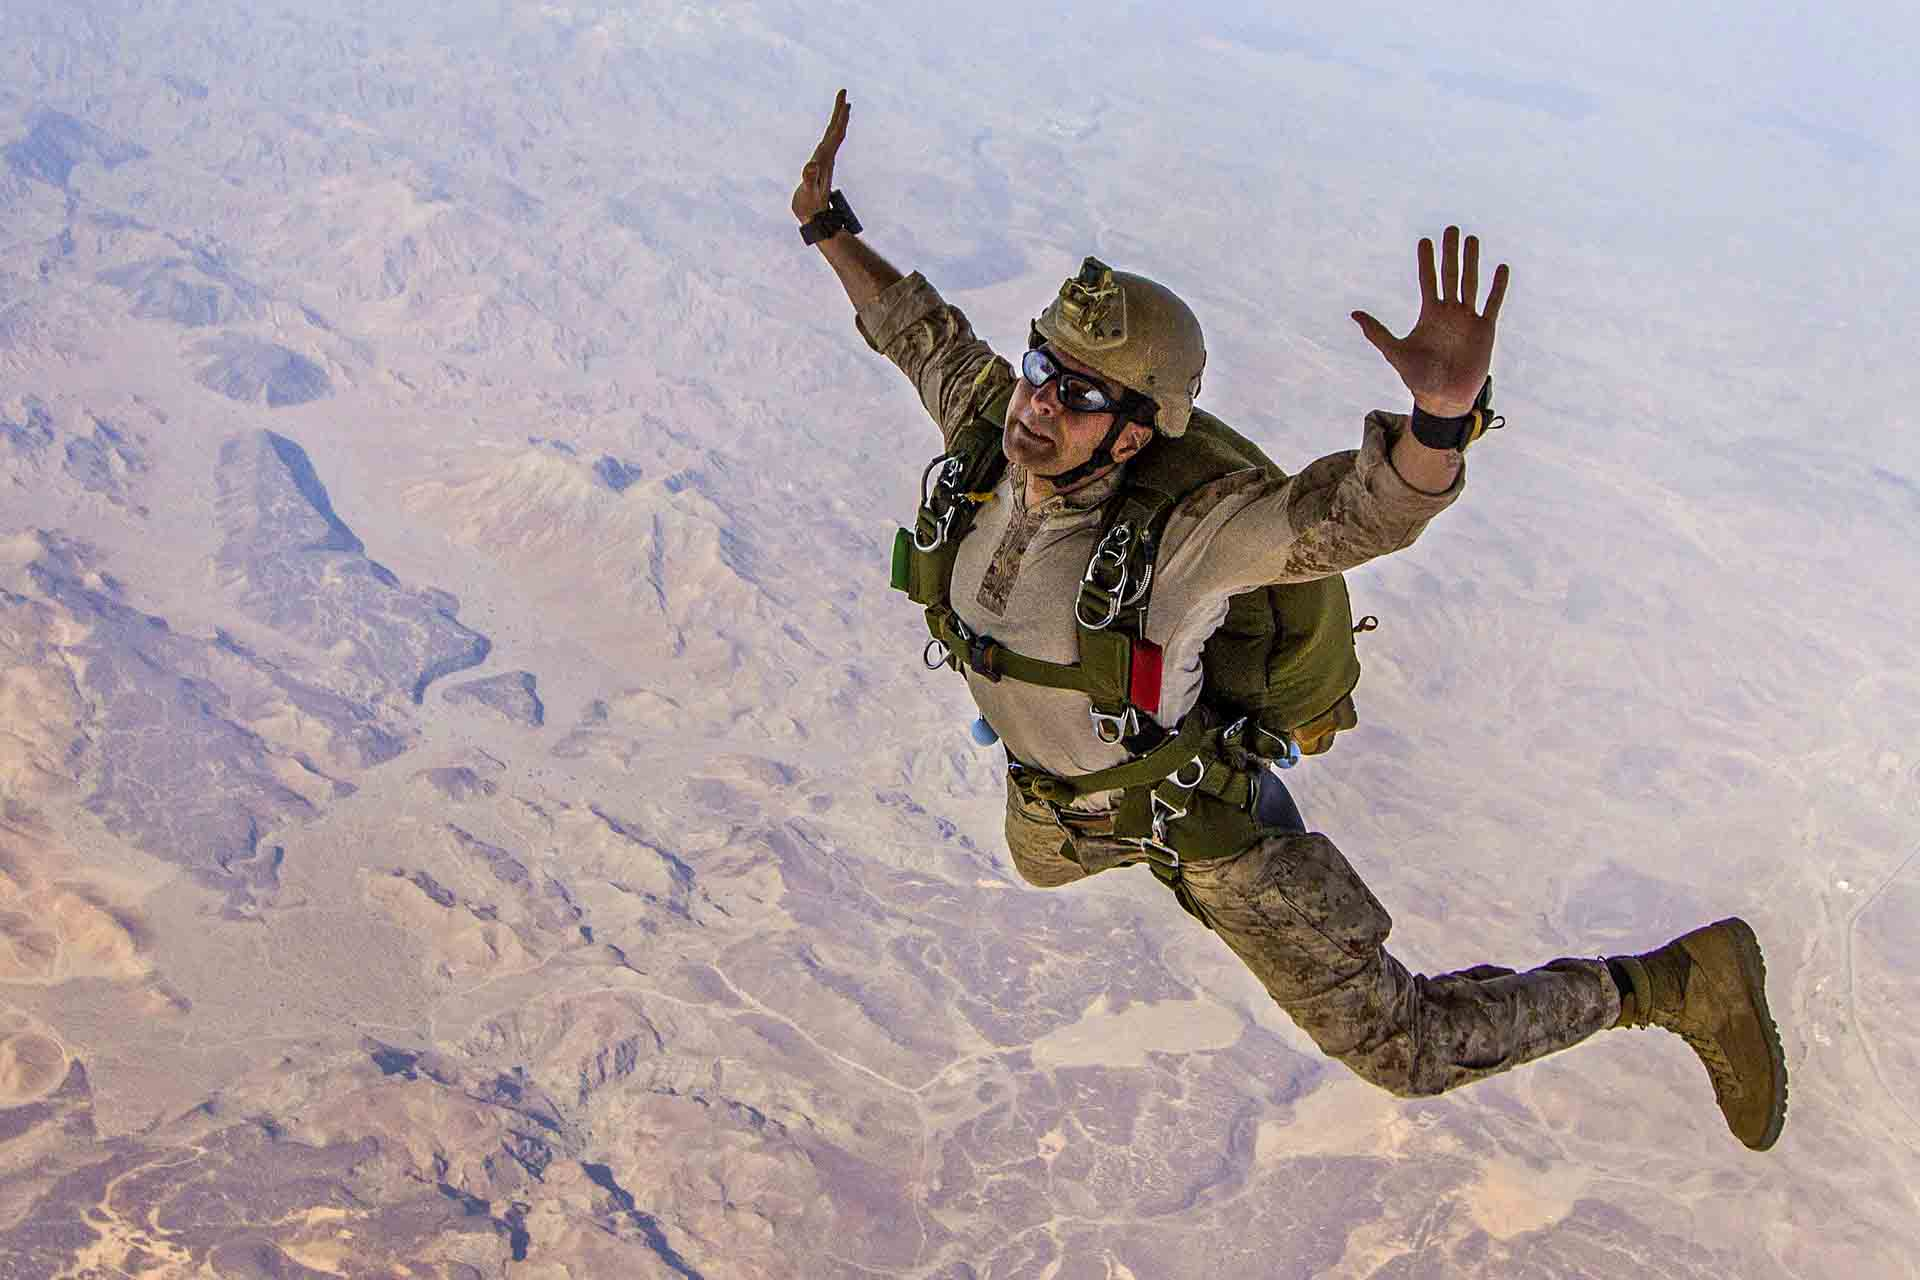 Soldiers Skydiving Latest HD Wallpapers Free Download | New HD ...